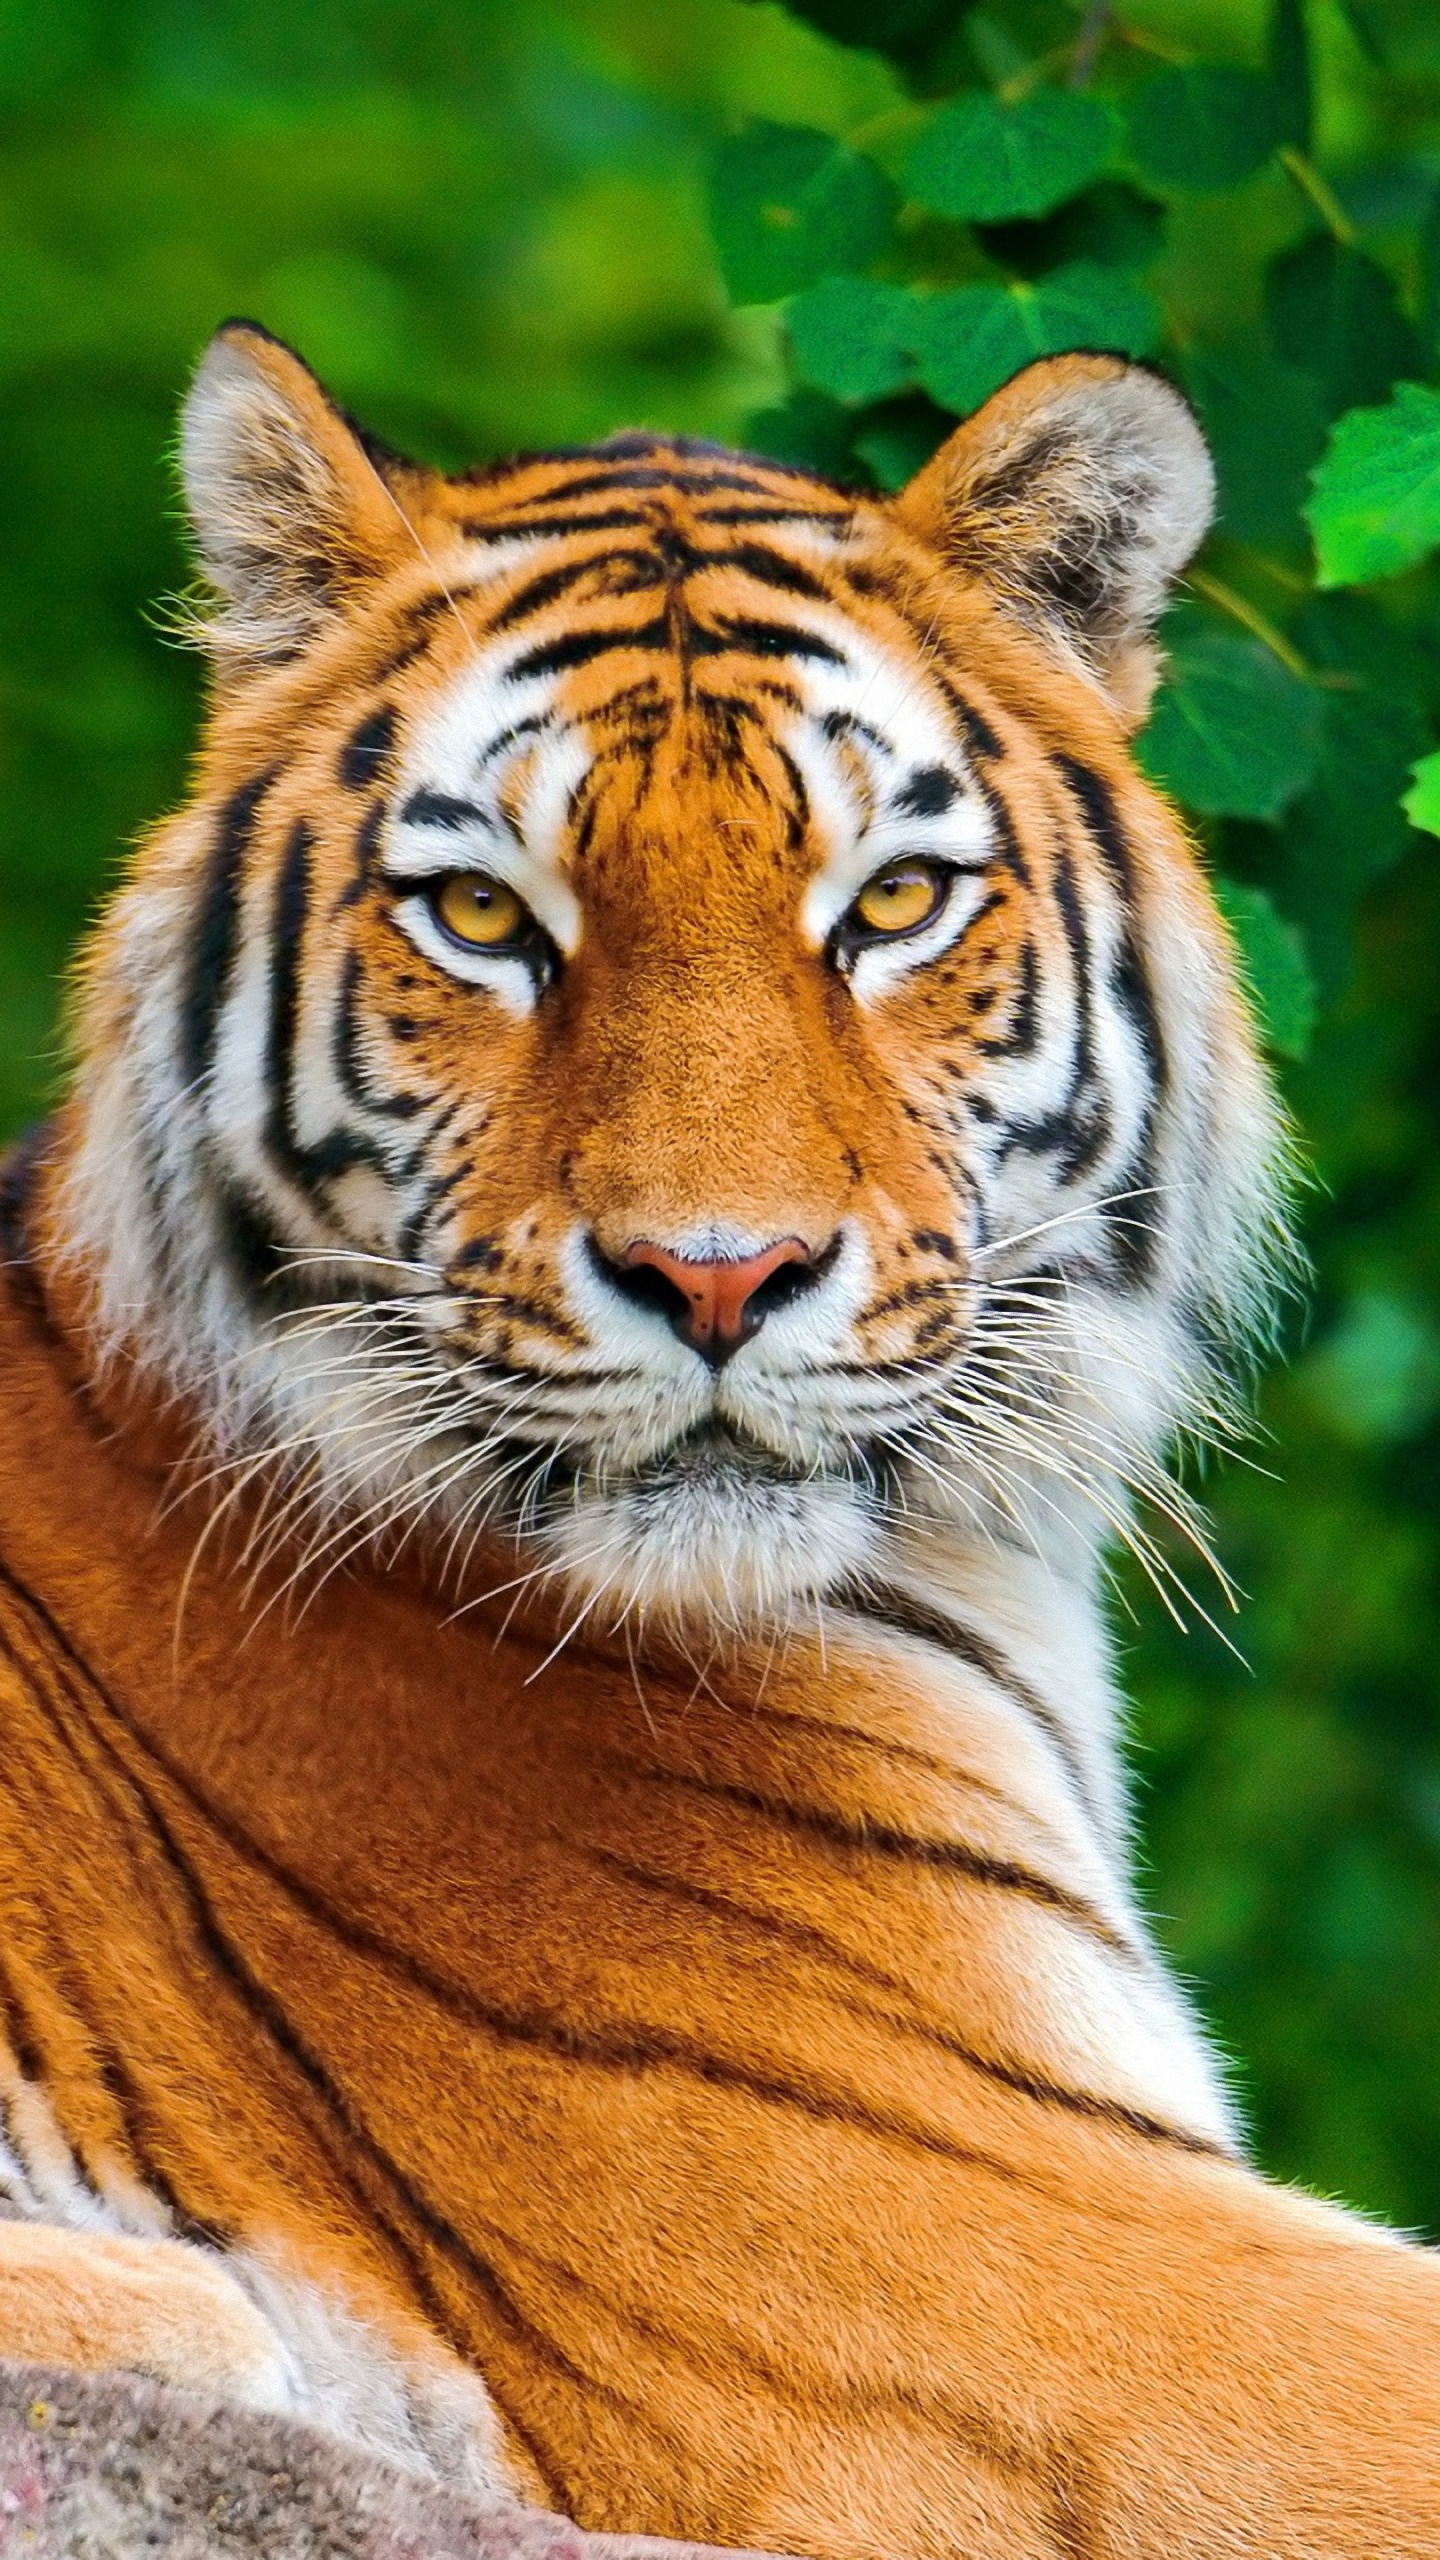 Inspirational Stories About Life: Download Tiger HD Wallpaper For Mobile Gallery